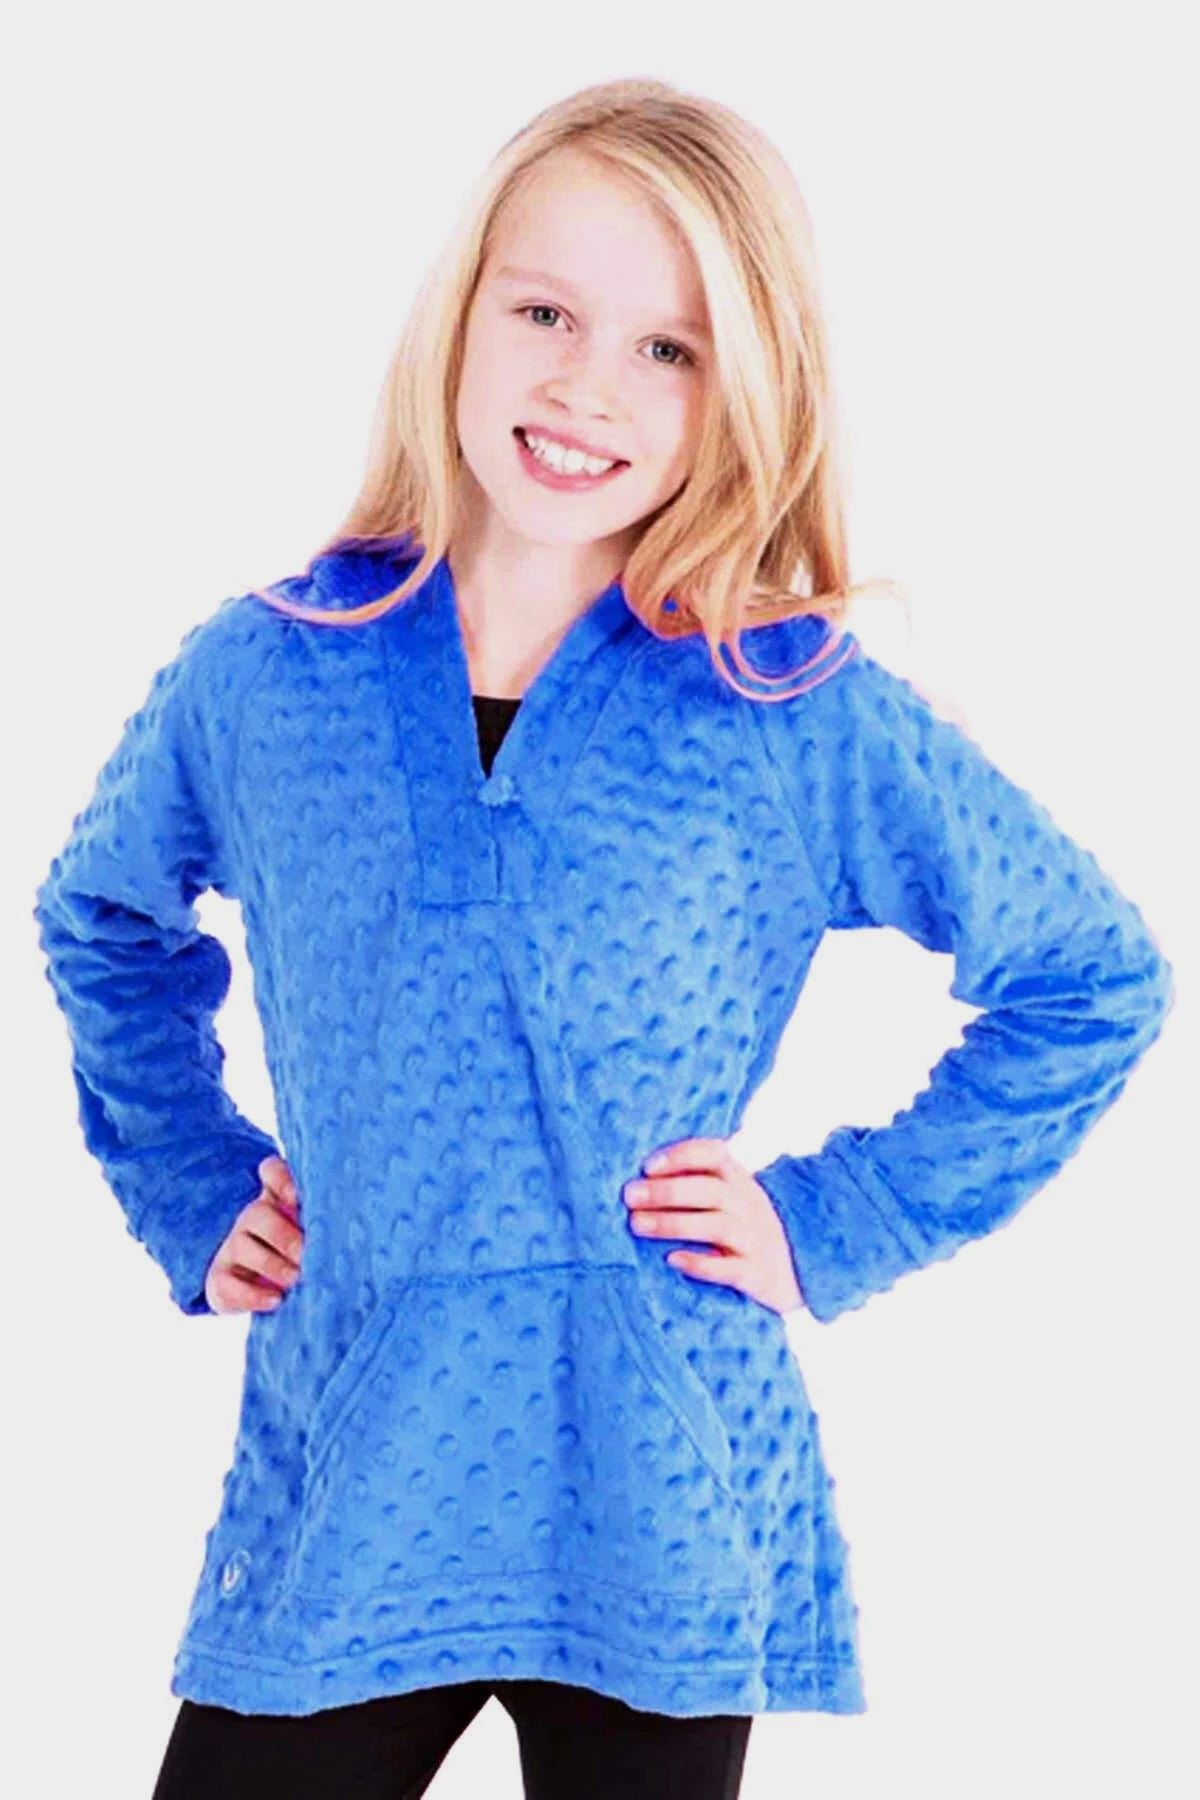 Minky Bubble Tunic - Blue